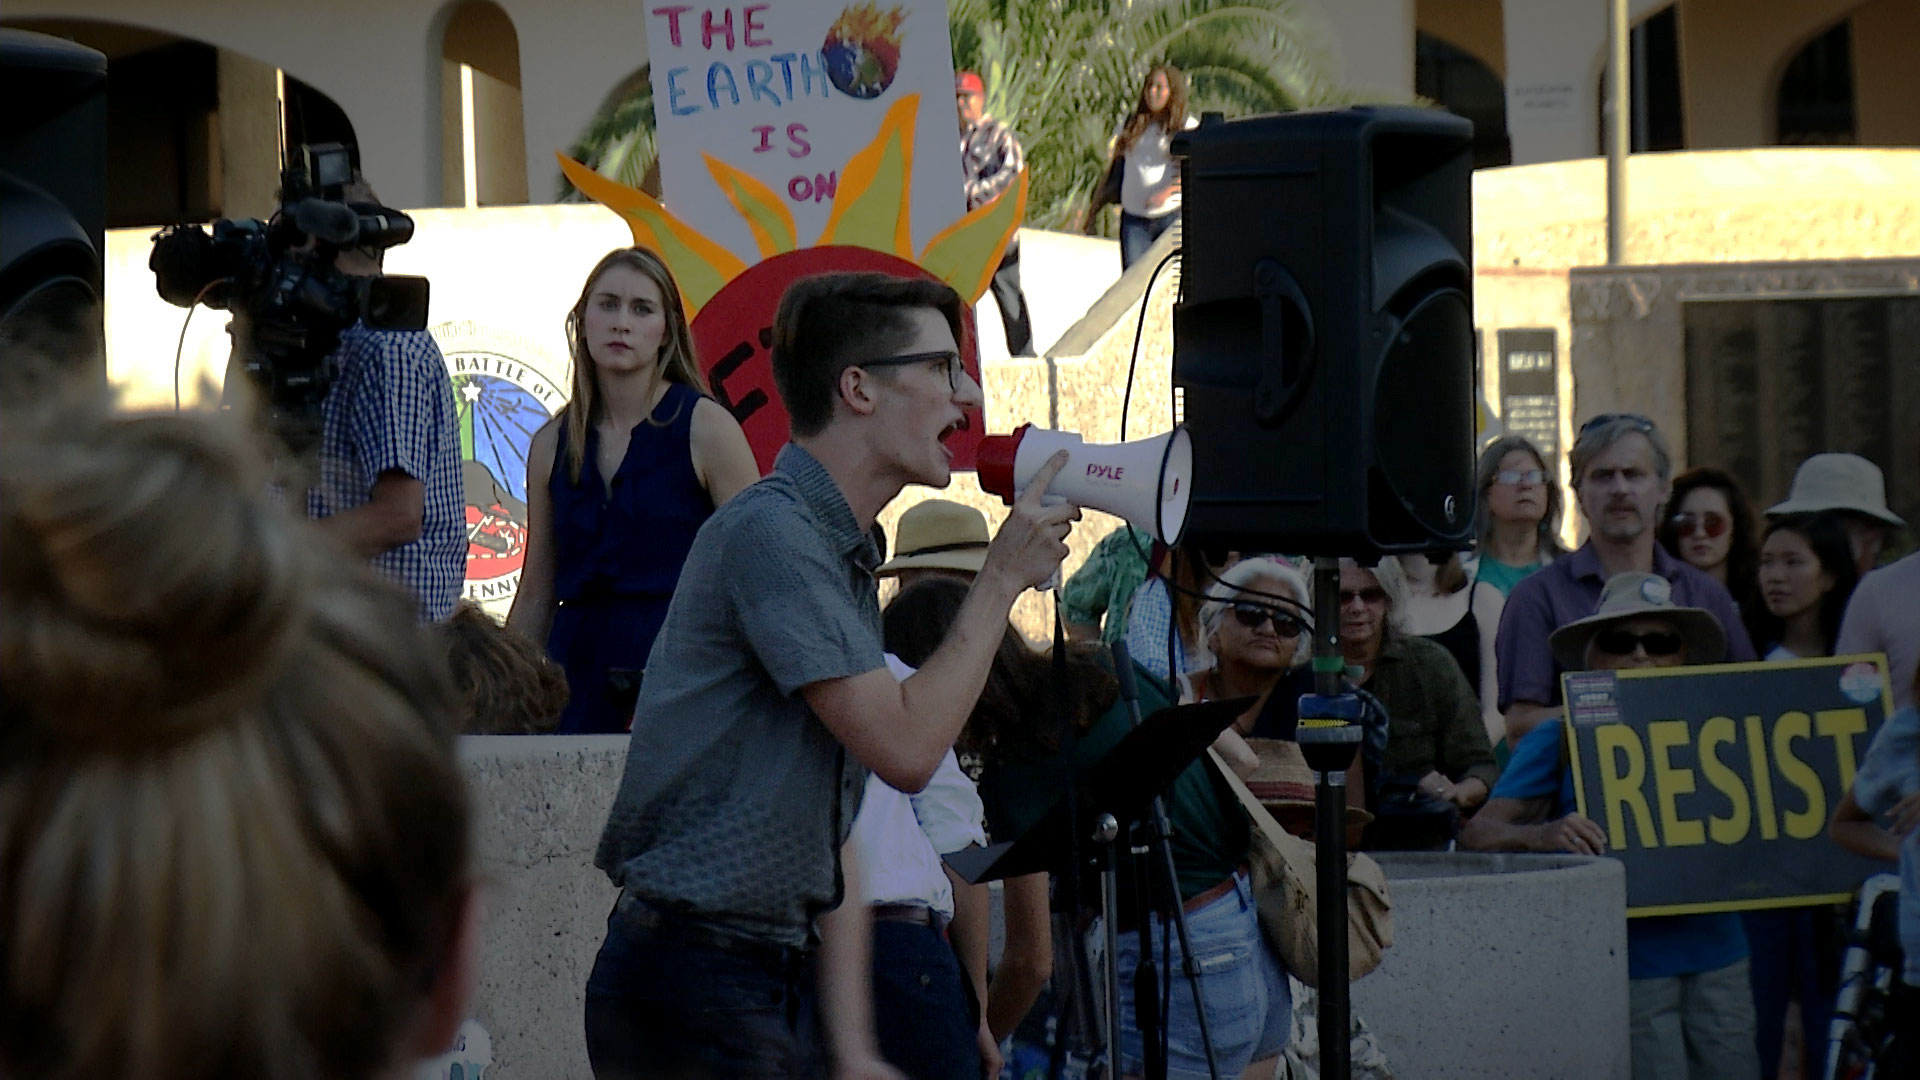 University of Arizona sophomore Kyle Kline speaks to a crowd gathered at a climate strike protest at El Presidio Park in Tucson on September 20, 2019.